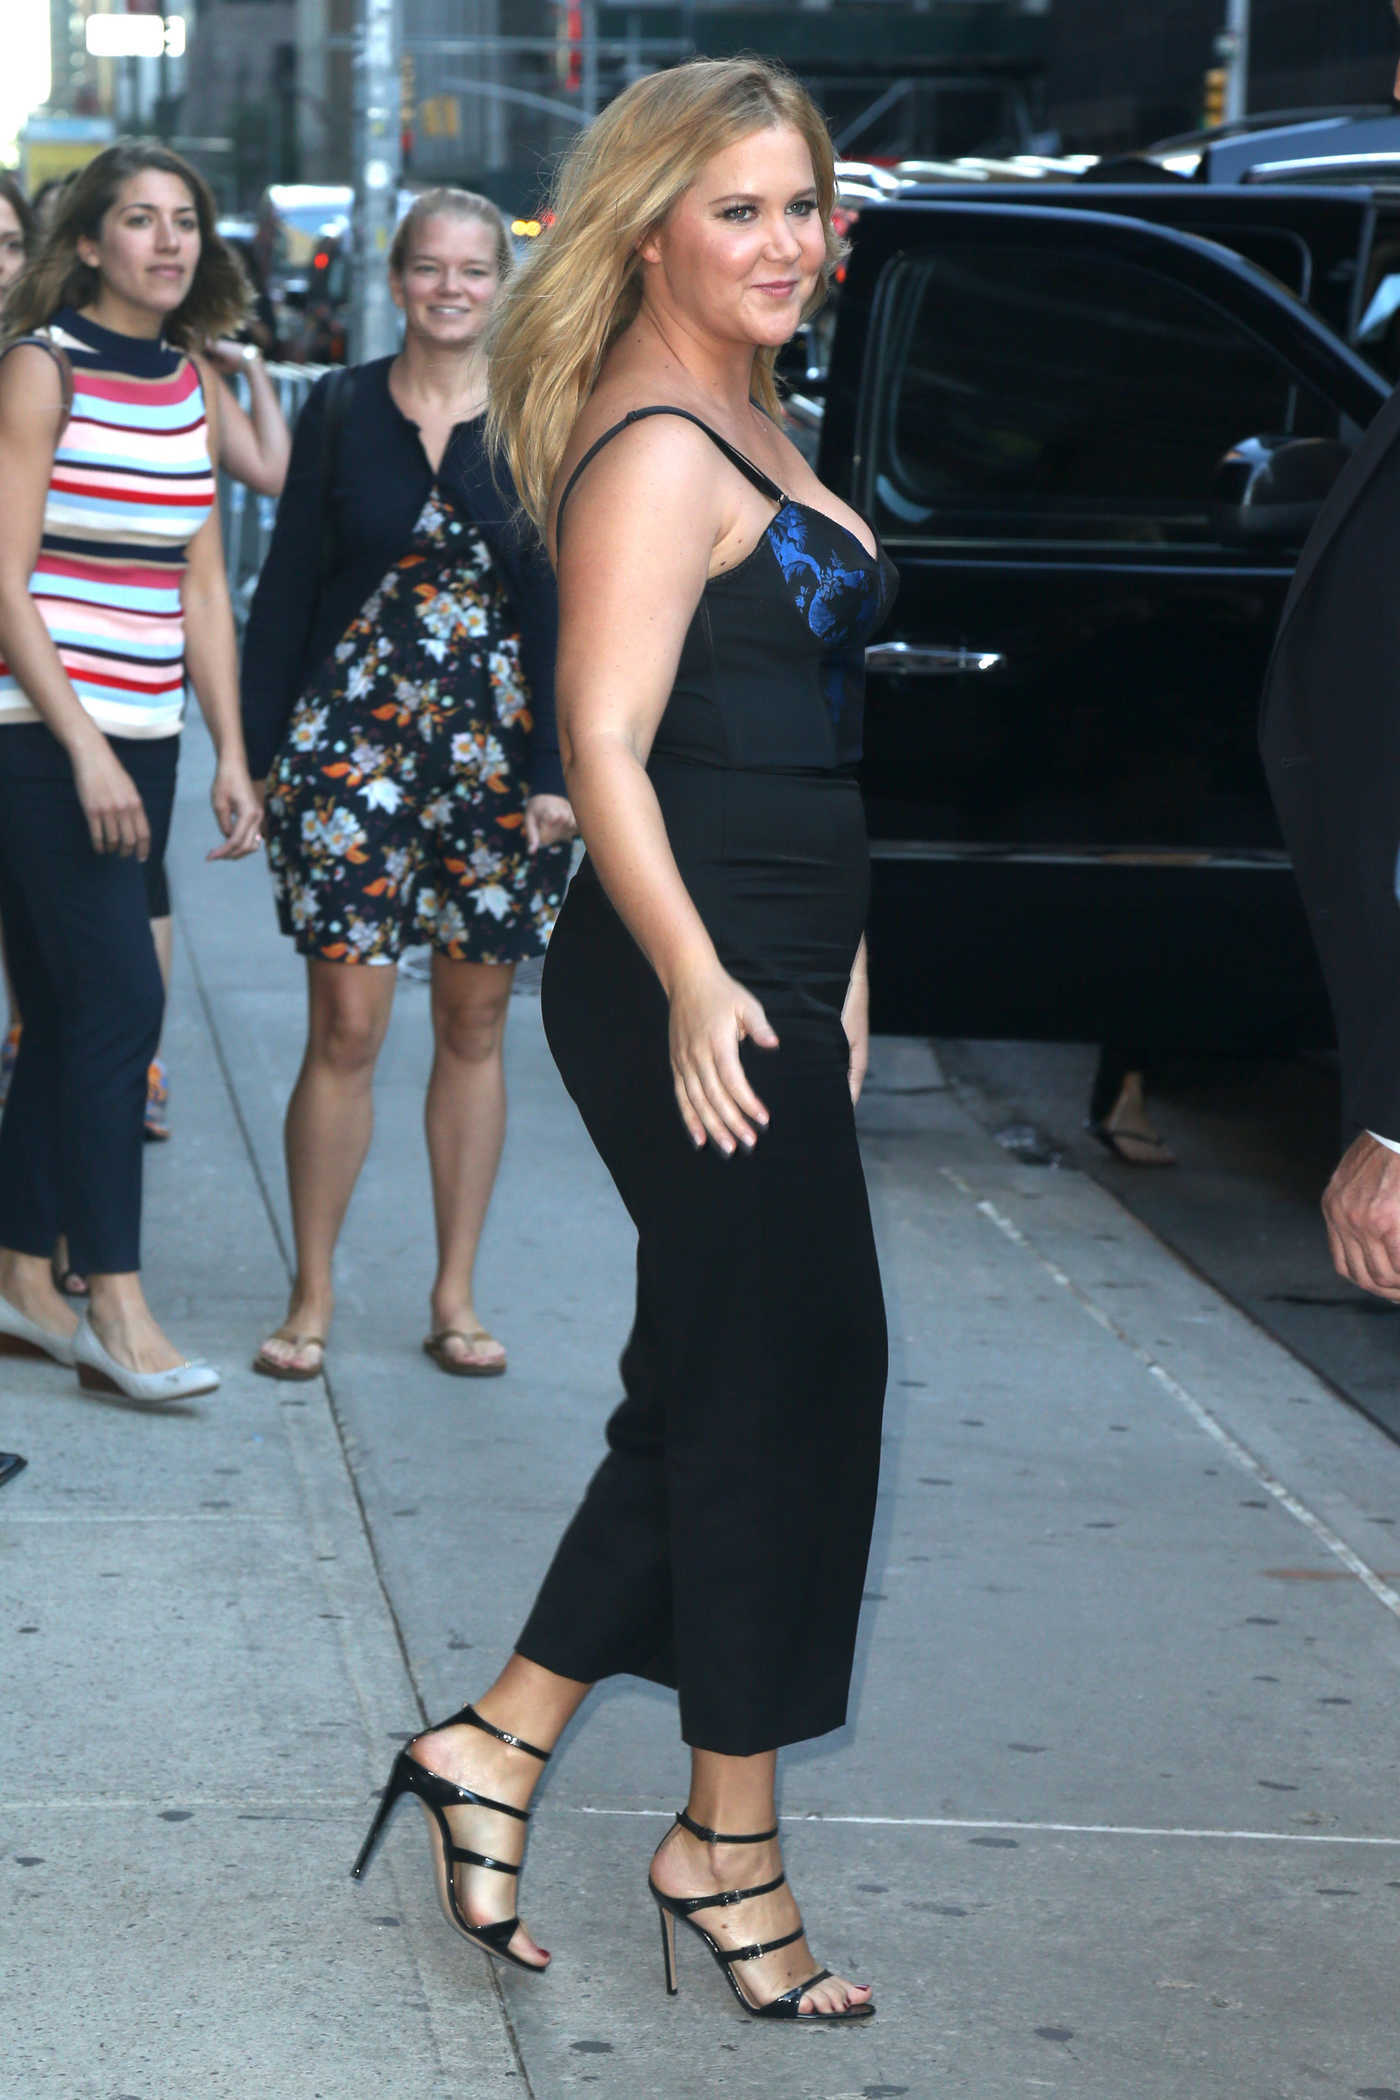 Amy Schumer Arrives at The Late Show in NYC 08/22/2016